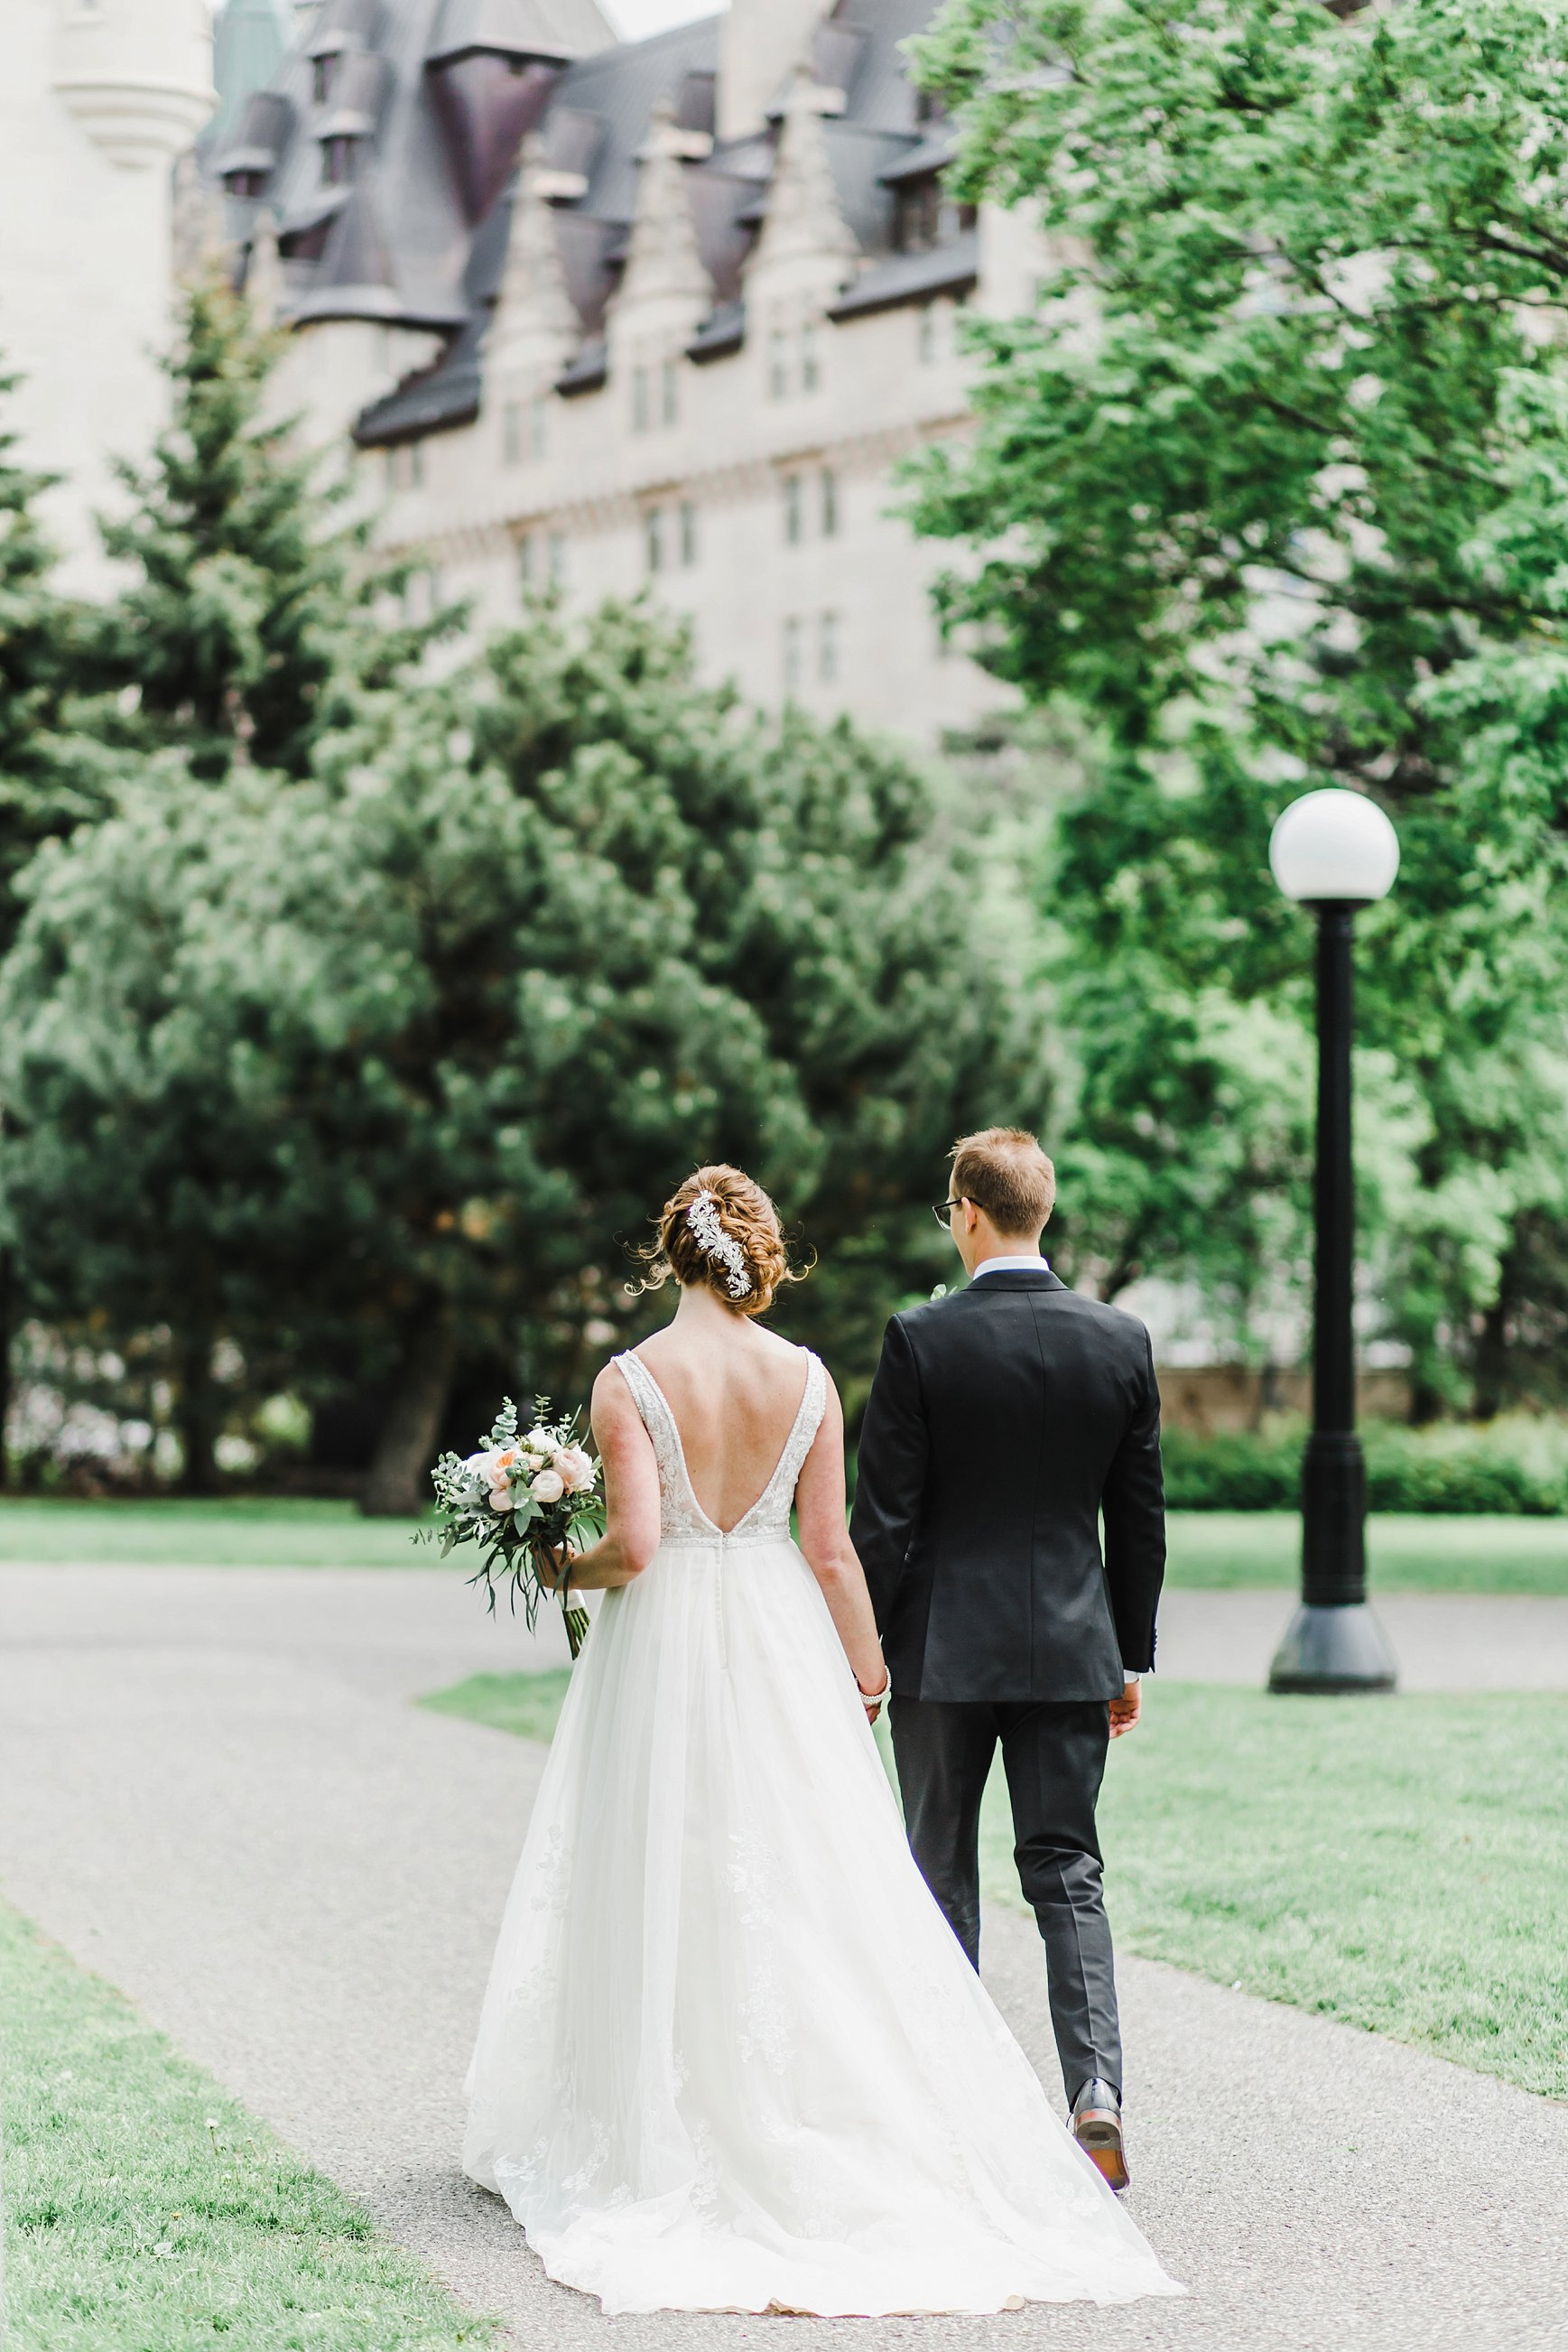 light airy indie fine art ottawa wedding photographer | Ali and Batoul Photography_0318.jpg